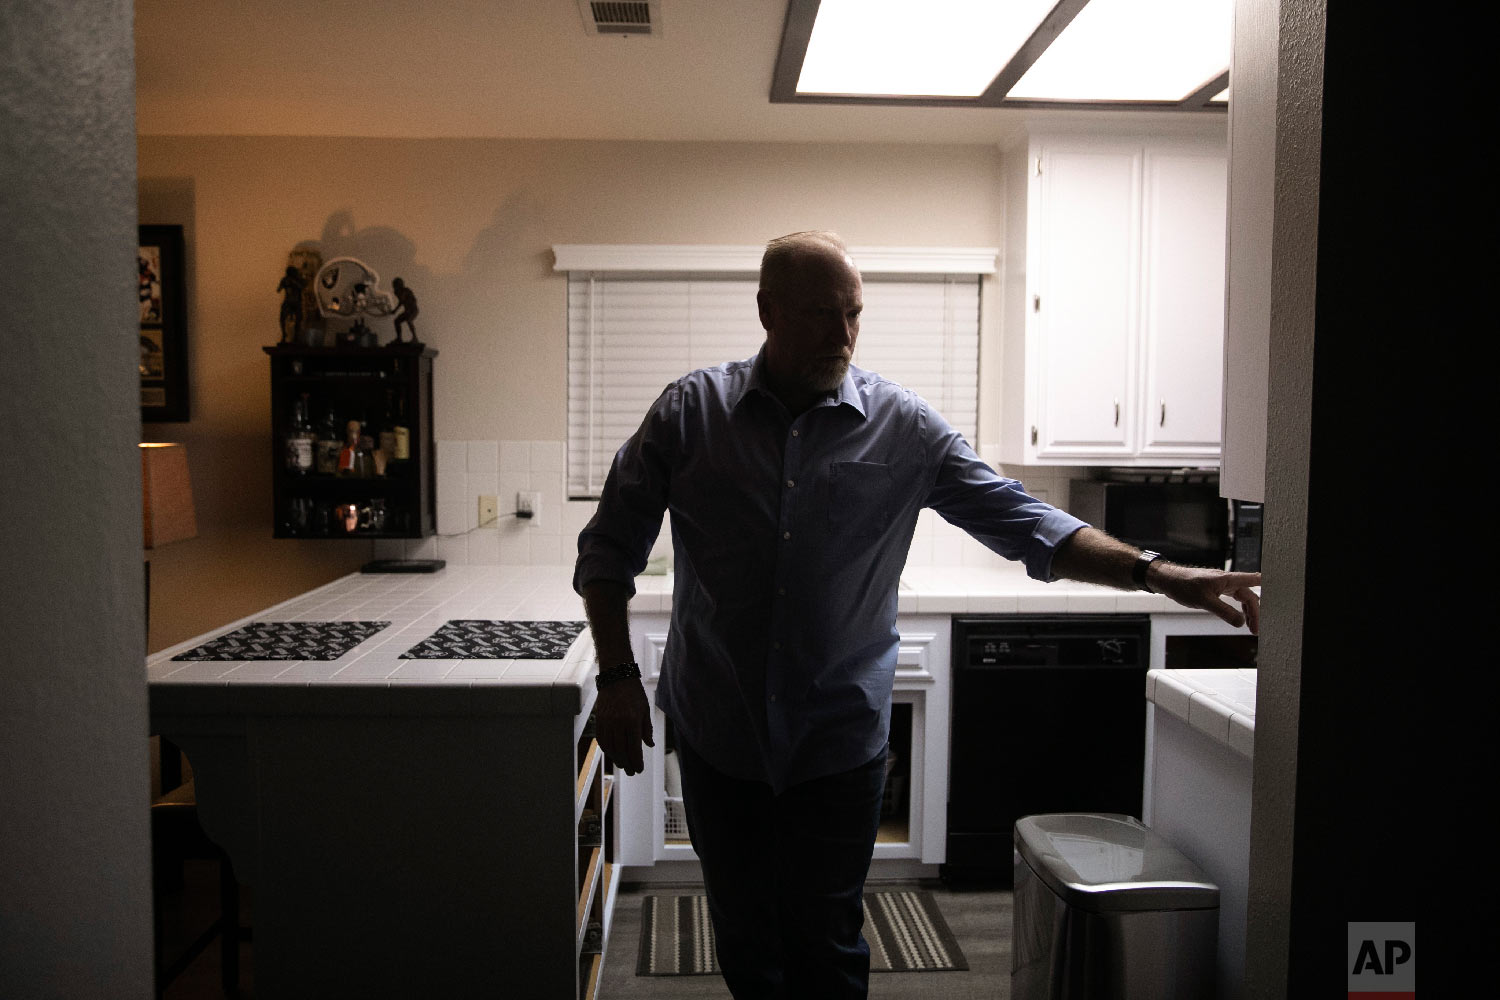 Chris George, a federal employee furloughed from his job as a forestry technician supervisor for the U.S. Department of Agriculture Forest Service, turns the kitchen lights off as he leaves home for a free meal offered to federal workers affected by the government shutdown Saturday, Jan. 19, 2019, in Hemet, Calif. (AP Photo/Jae C. Hong)